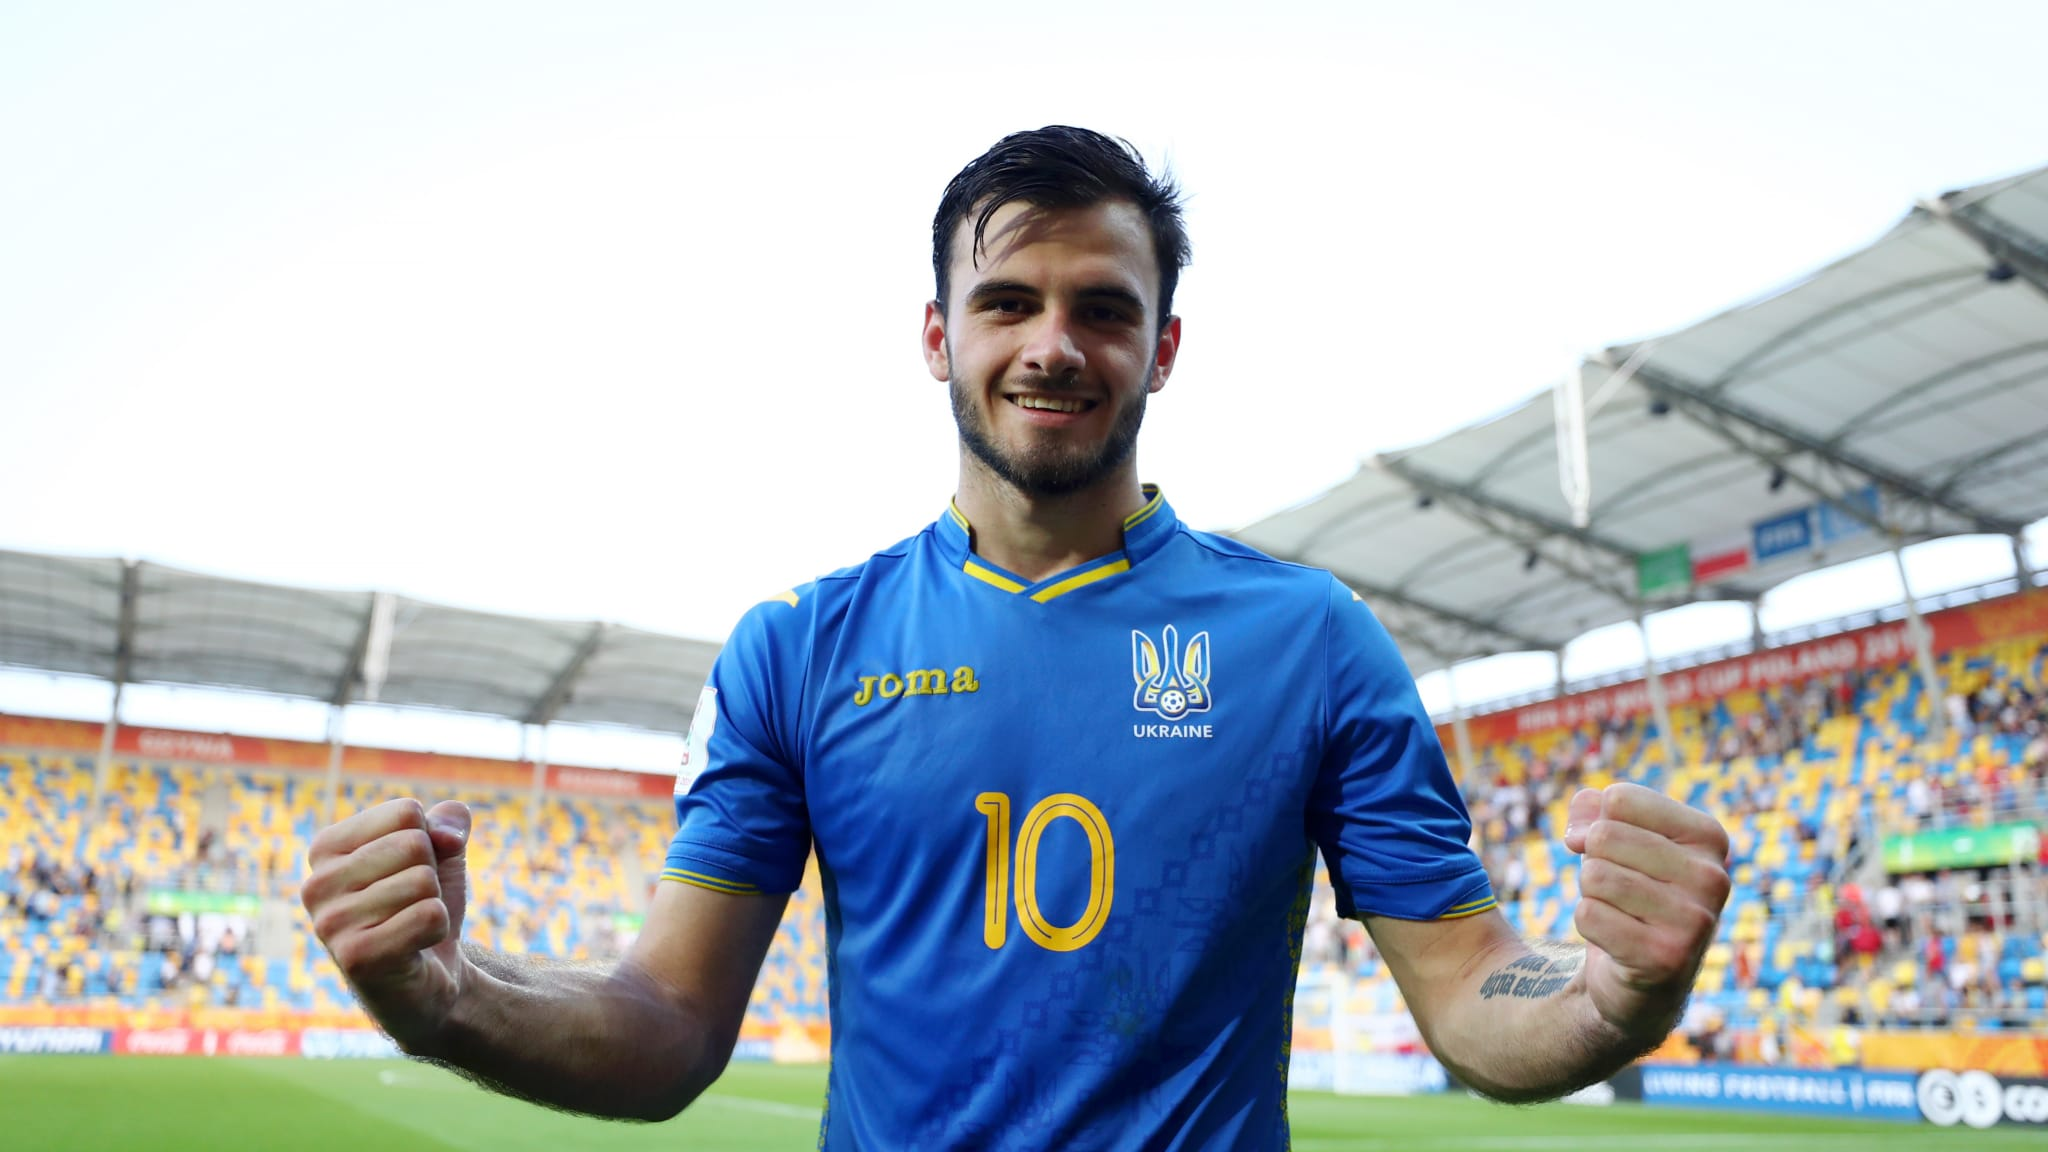 Serhii Buletsa of Ukraine celebrates after winning a semi-final against Italy at the FIFA U-20 World Cup Poland 2019